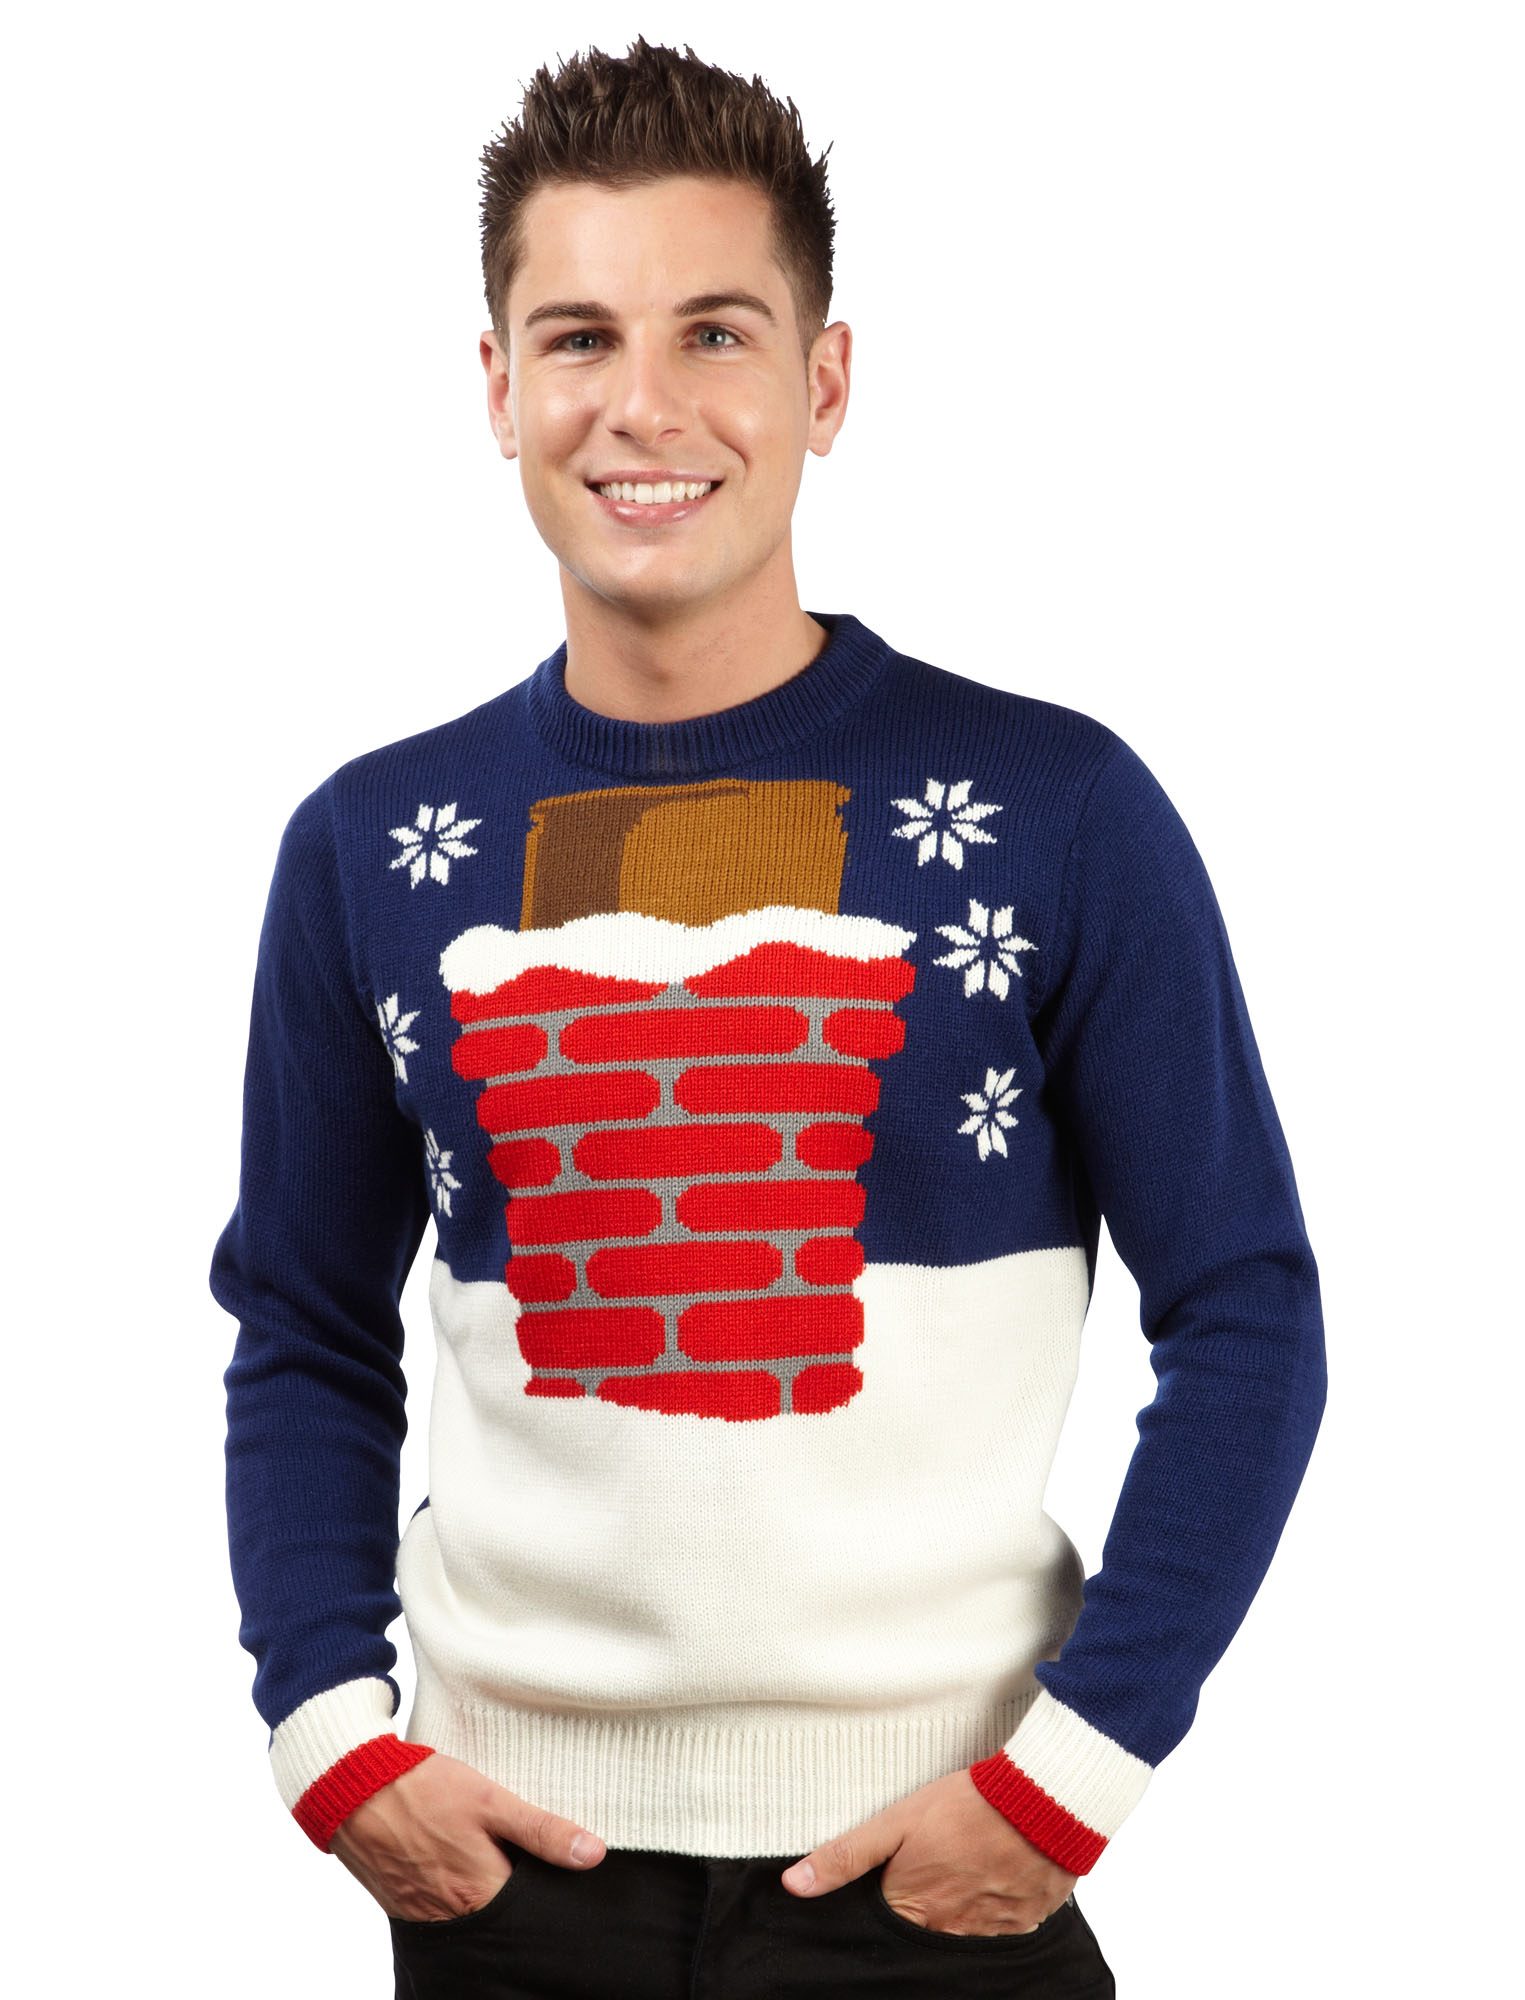 Mens Christmas Jumper Novelty Knitted Xmas Jumpers Sweater Top New eBay